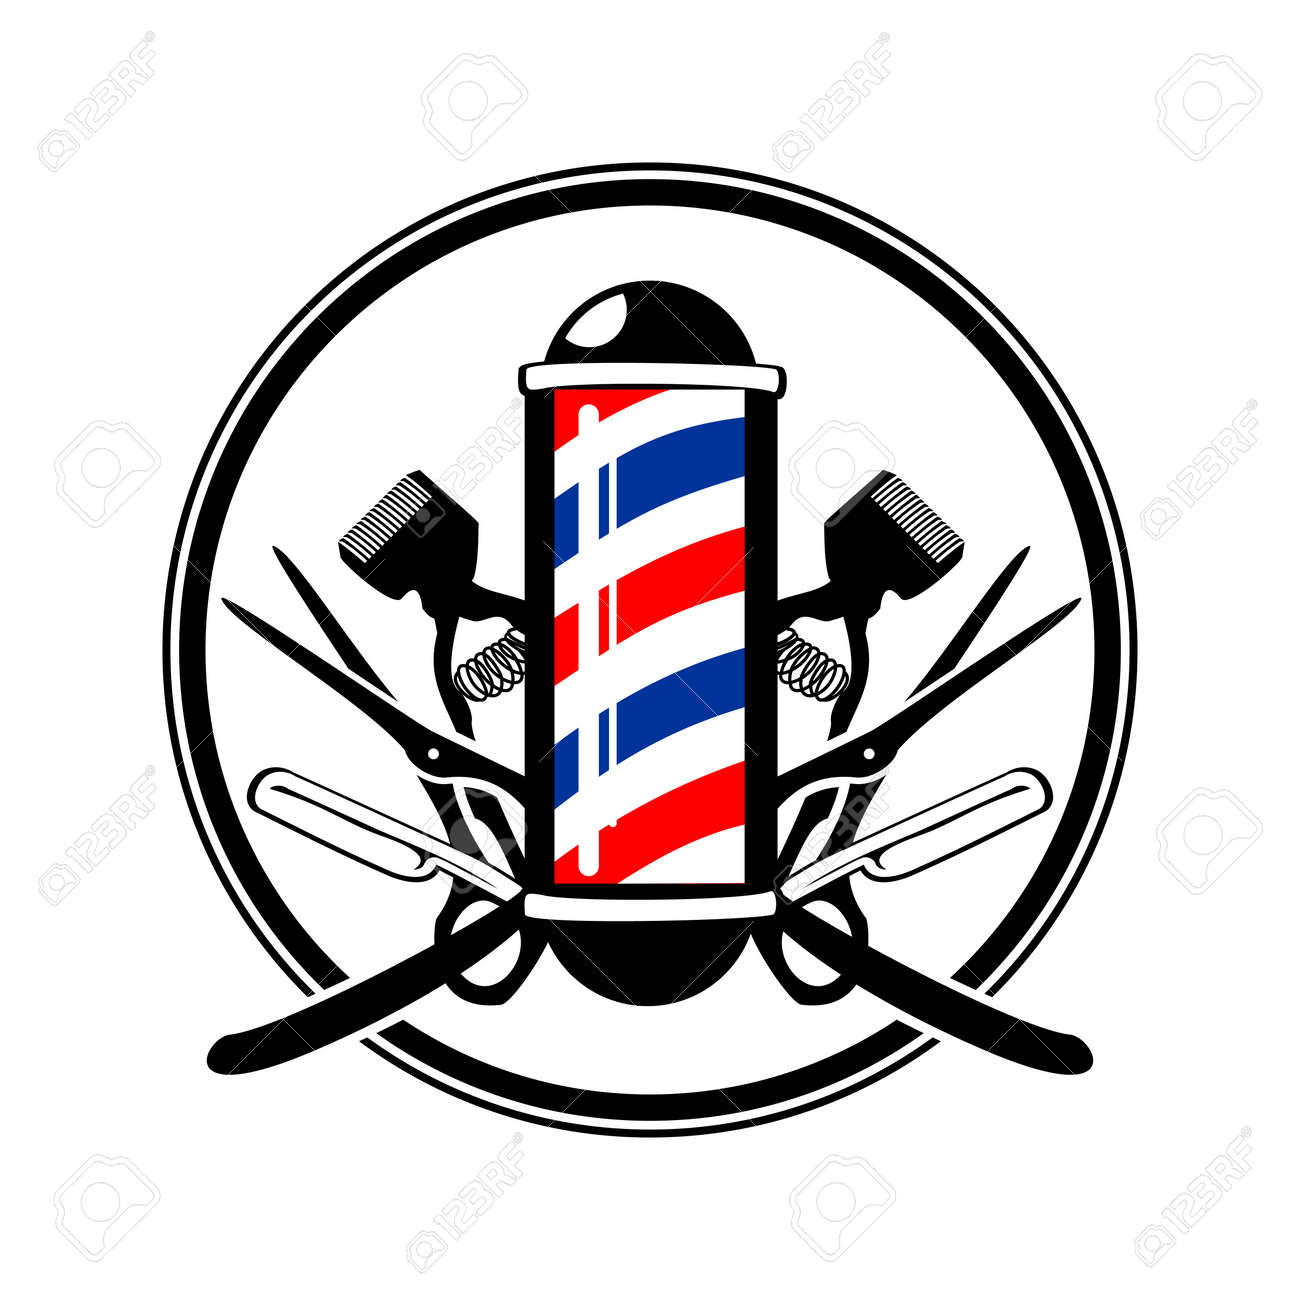 Circular Emblem Barber's Pole with Scissor, Razor And Old Clippers Symbol Vector Graphic Badge Design - 95578007